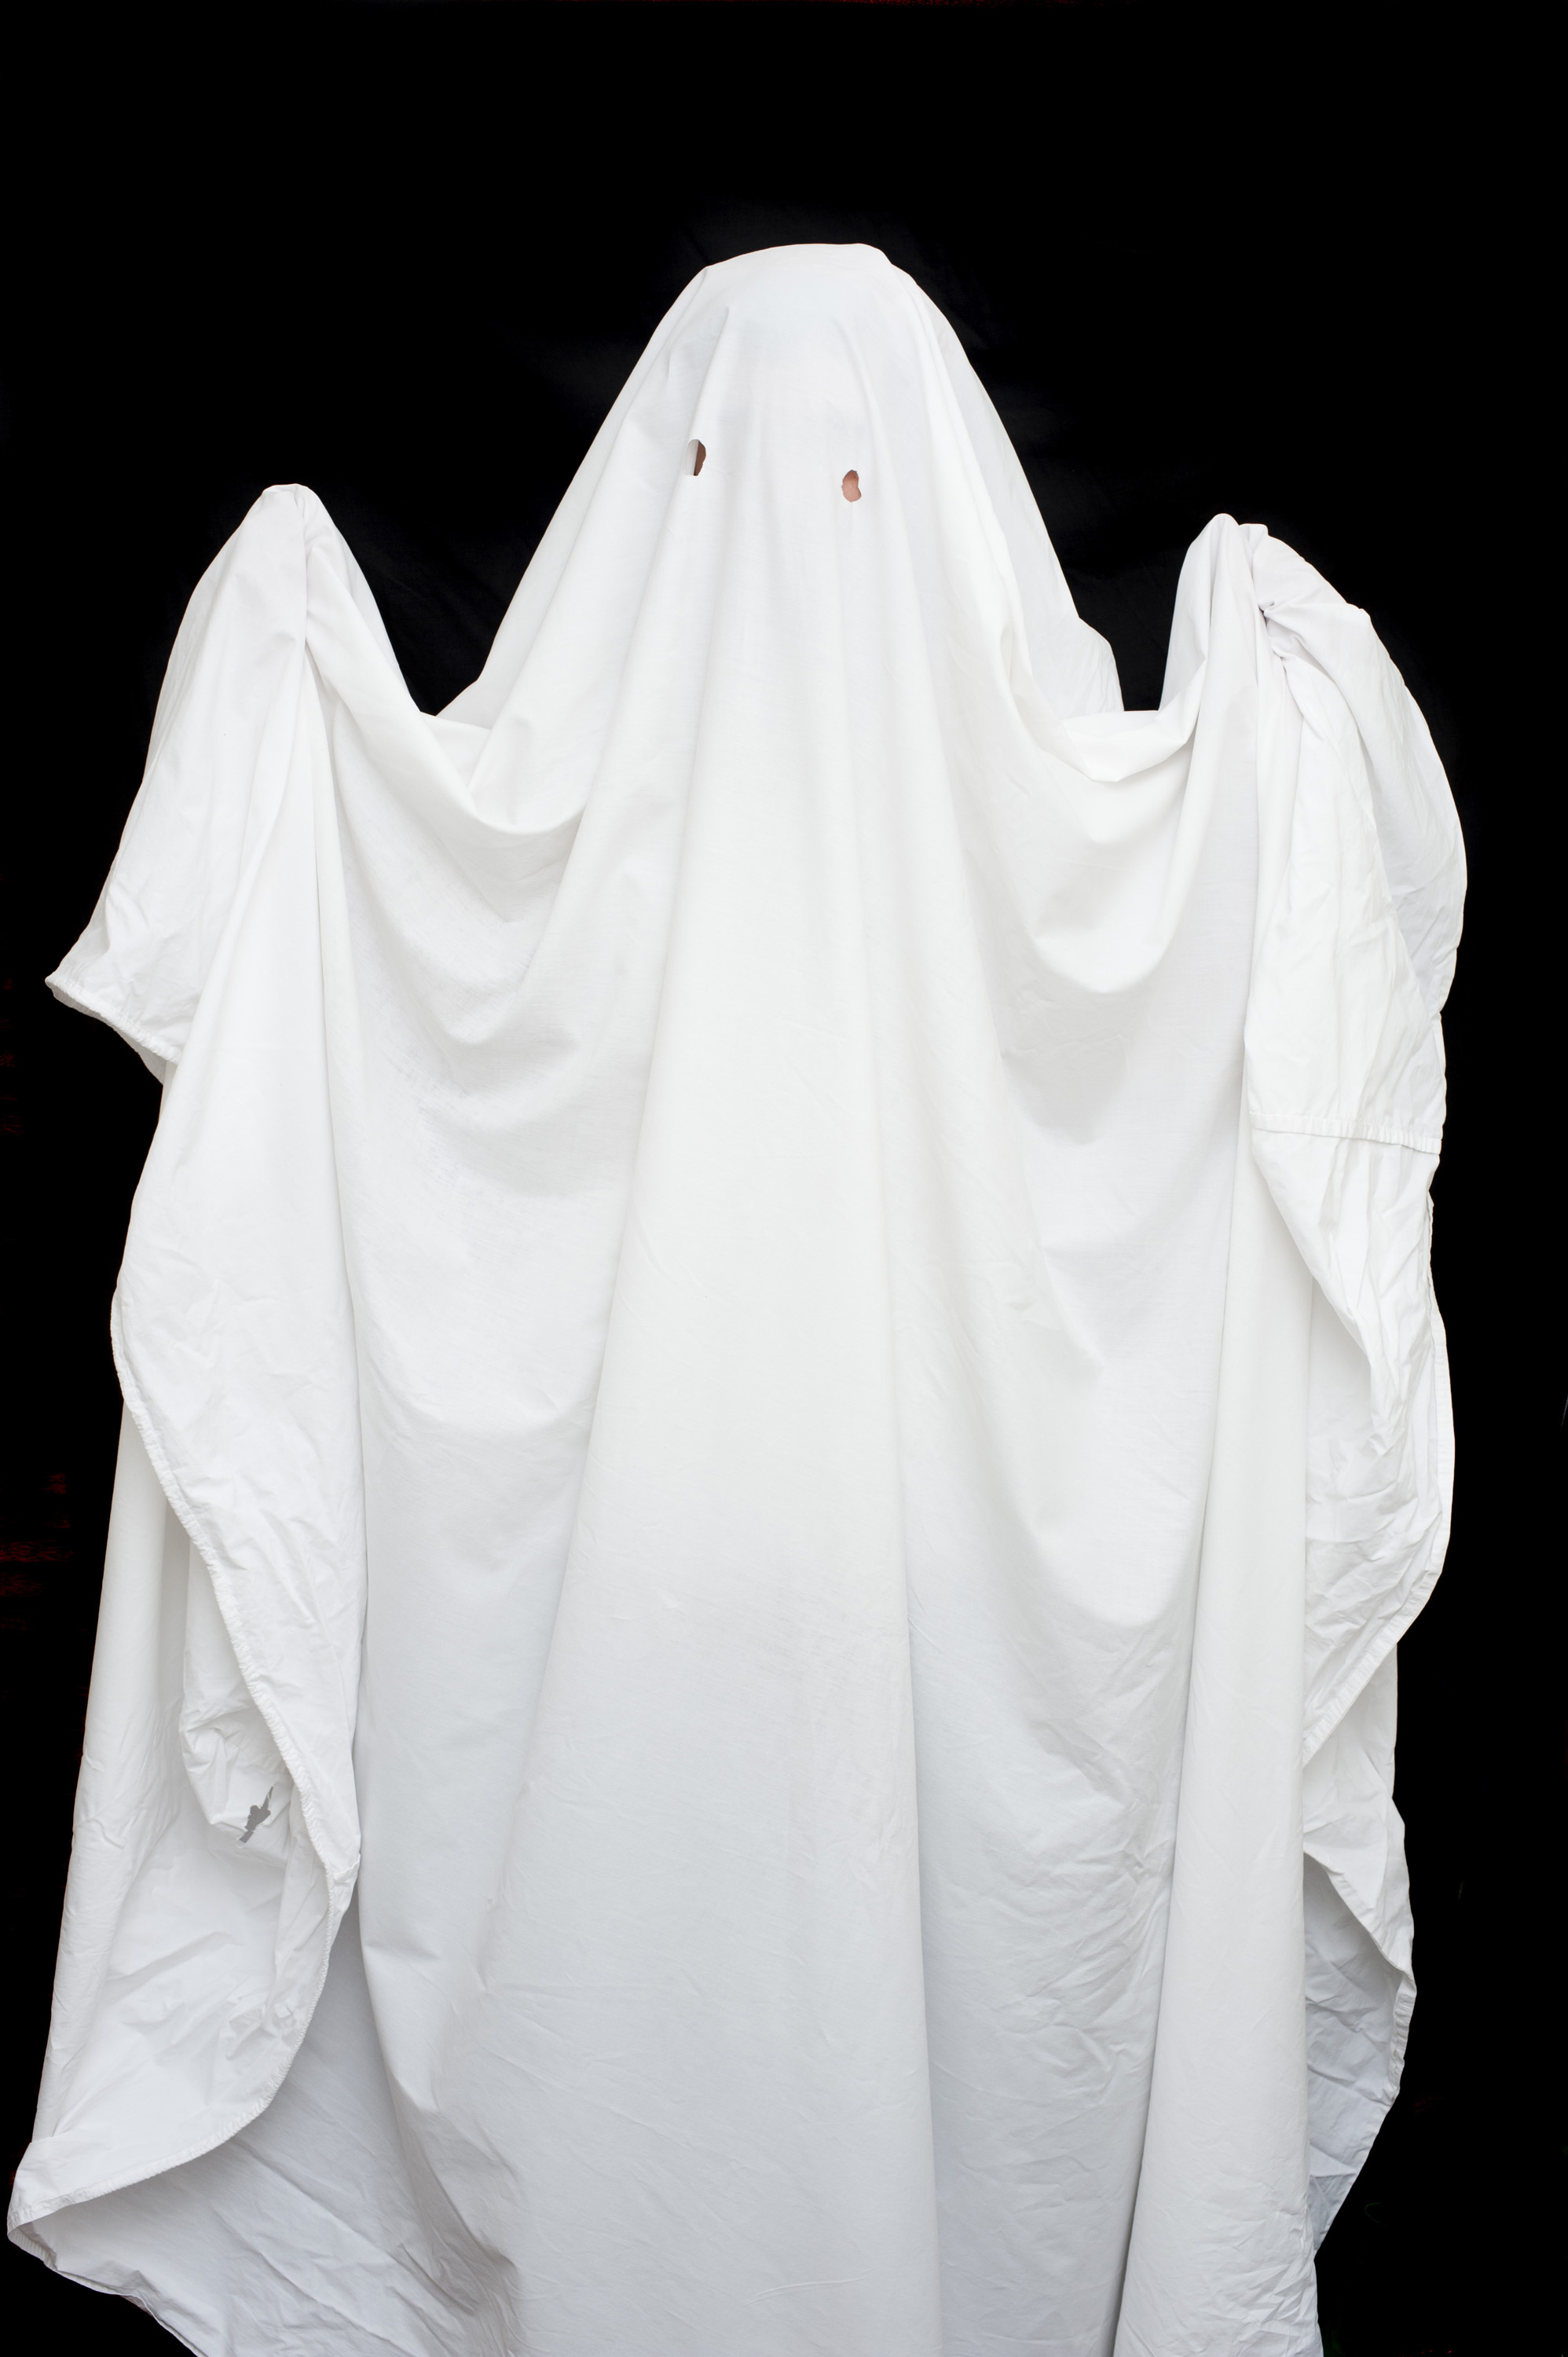 White Bed Sheet Ghost Costume